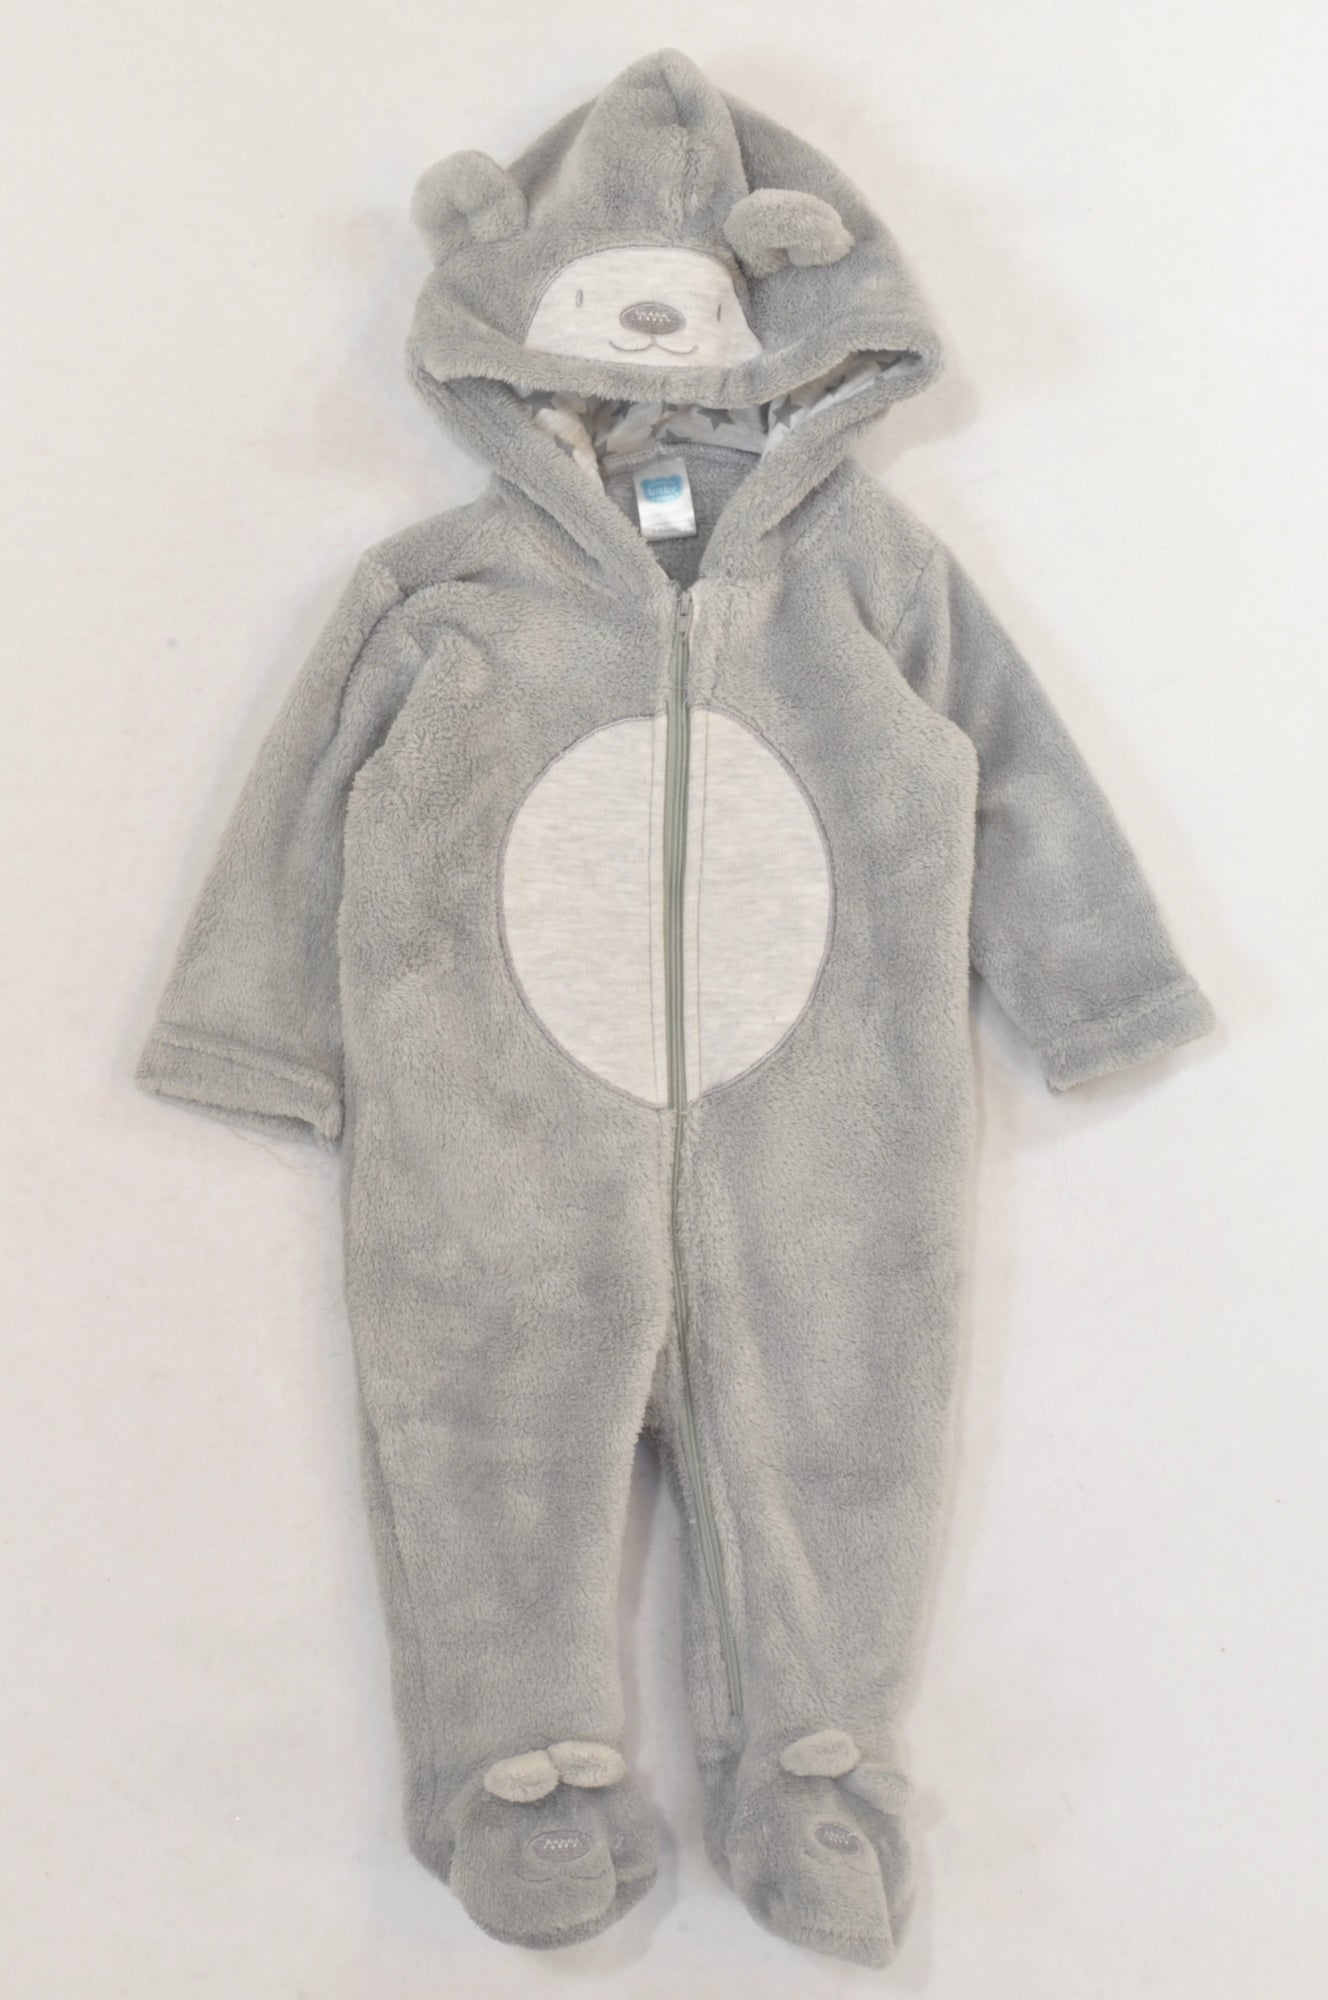 Ackermans Grey Fleece Heathered Tummy Bear Onesie Unisex 3-6 months